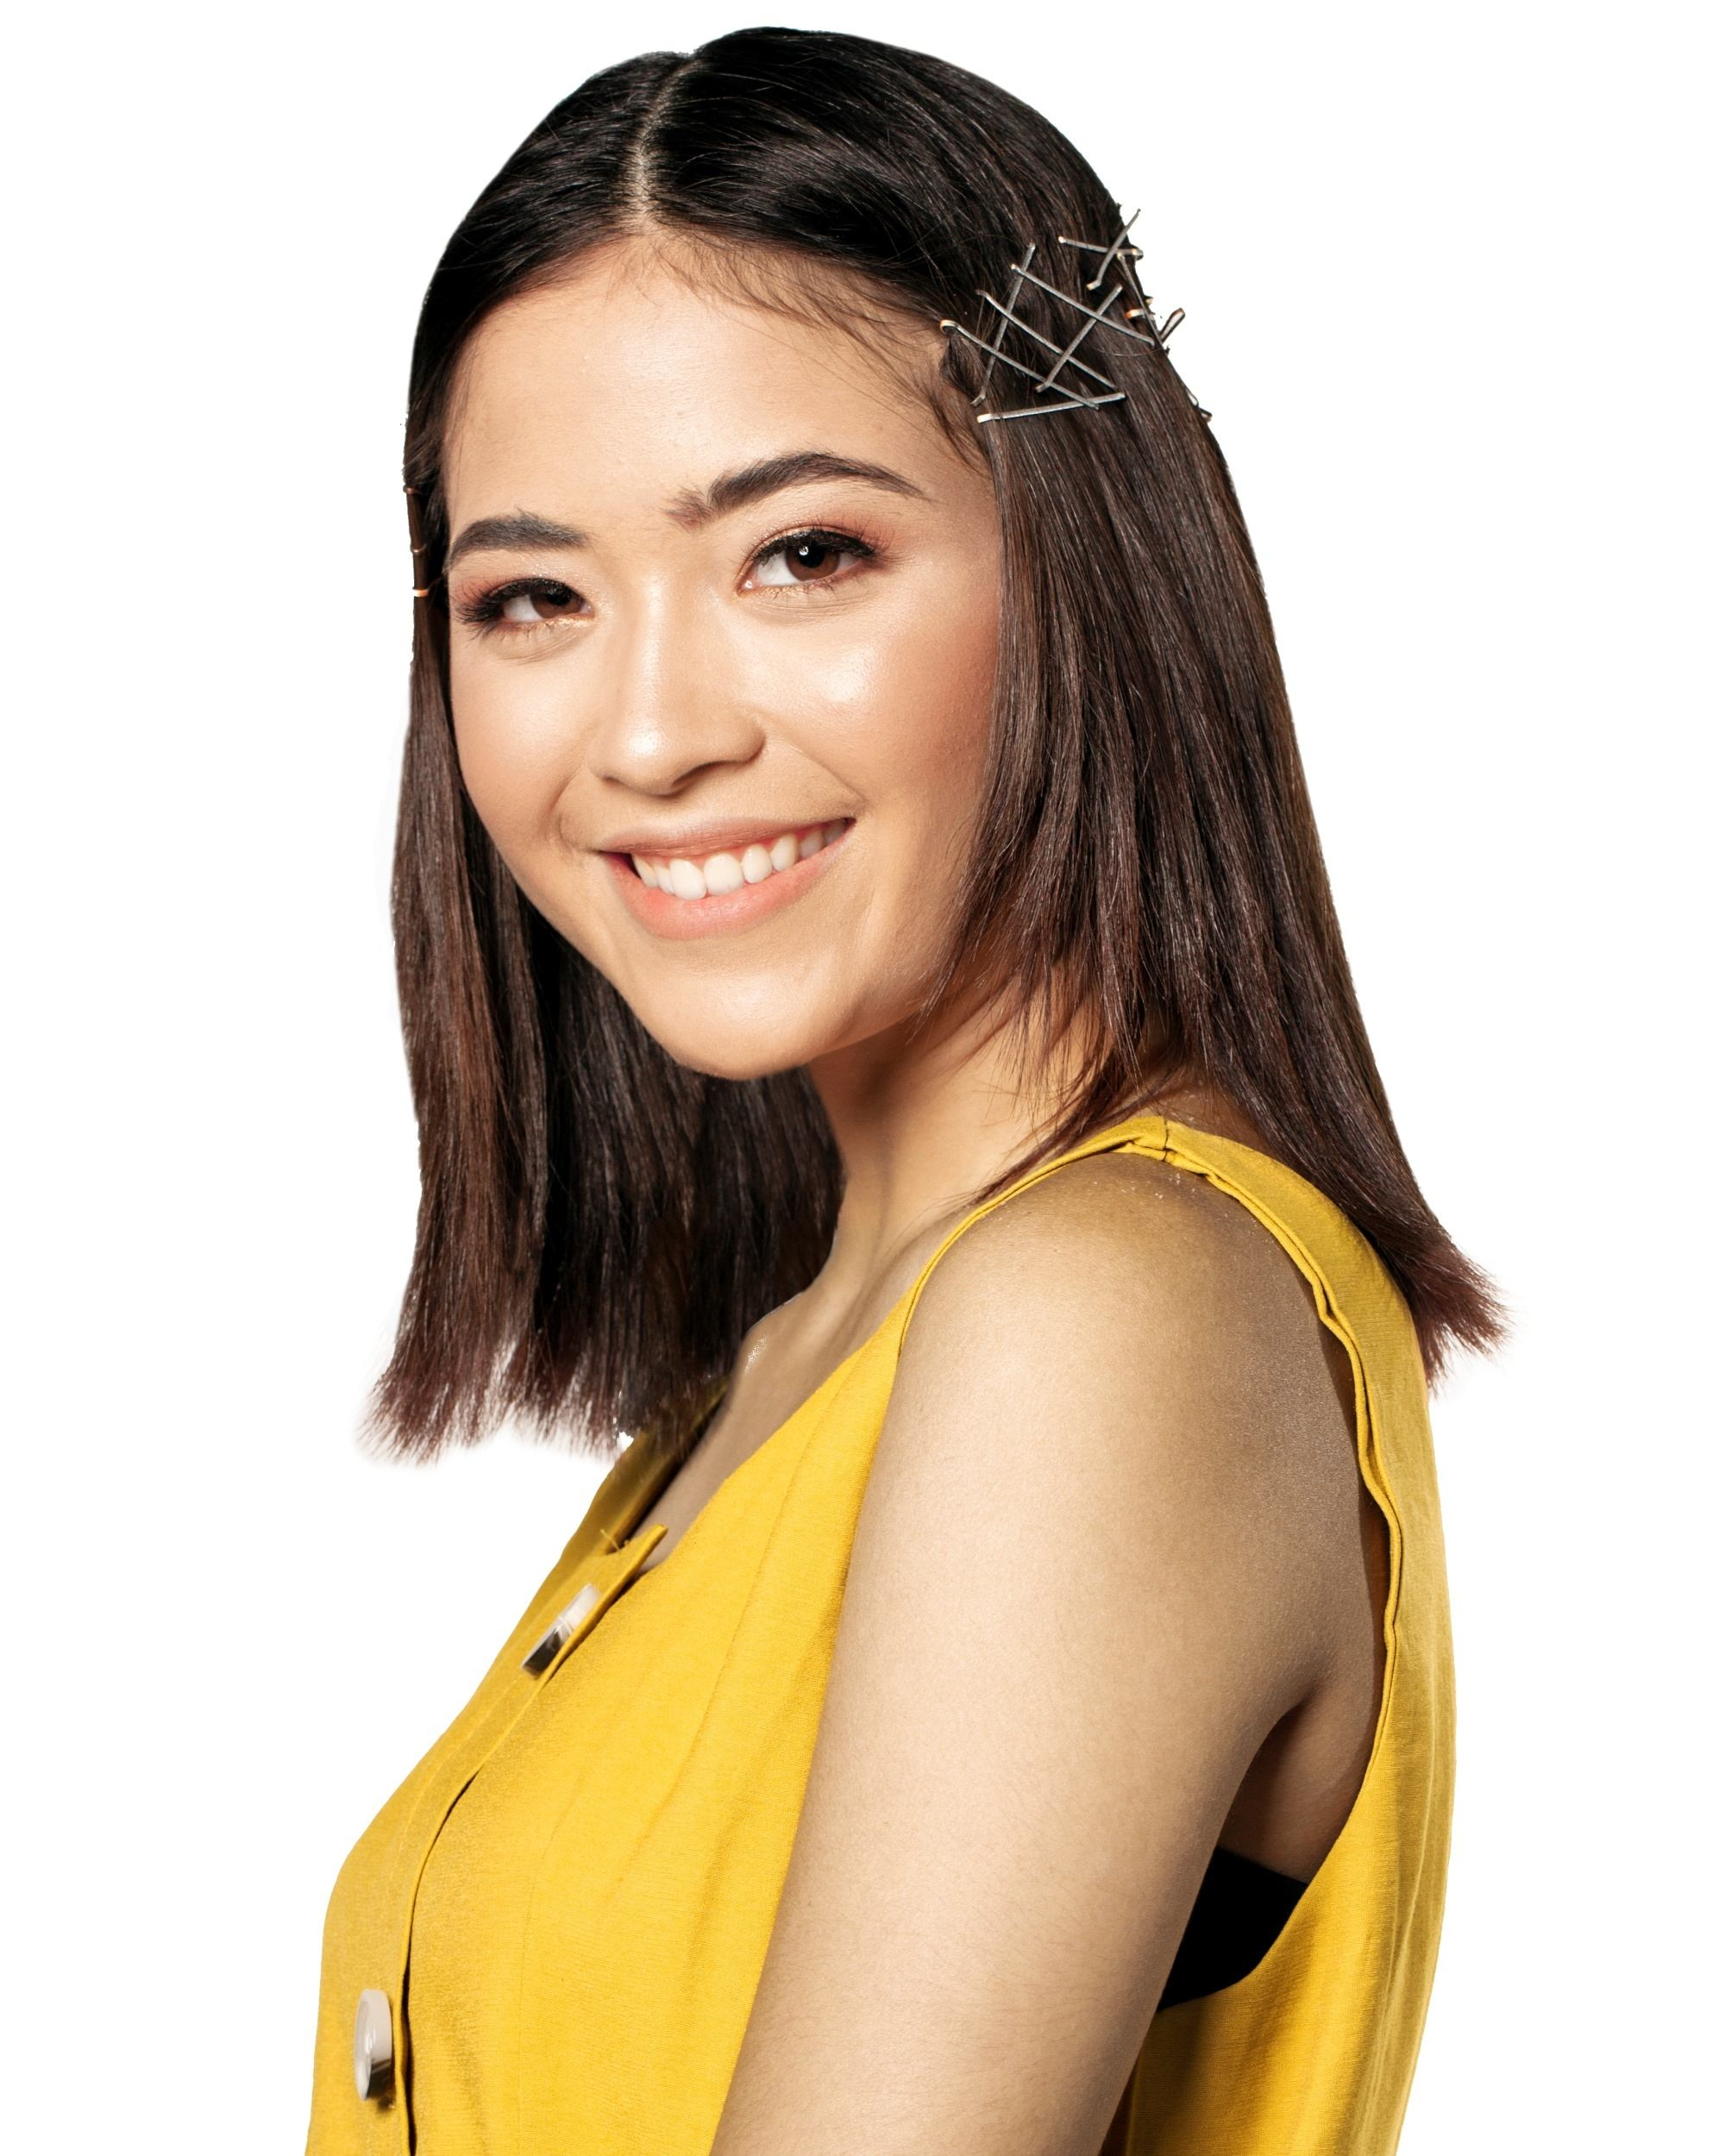 Asian woman with hair in bobby pin hair crown wearing a sleeveless yellow top